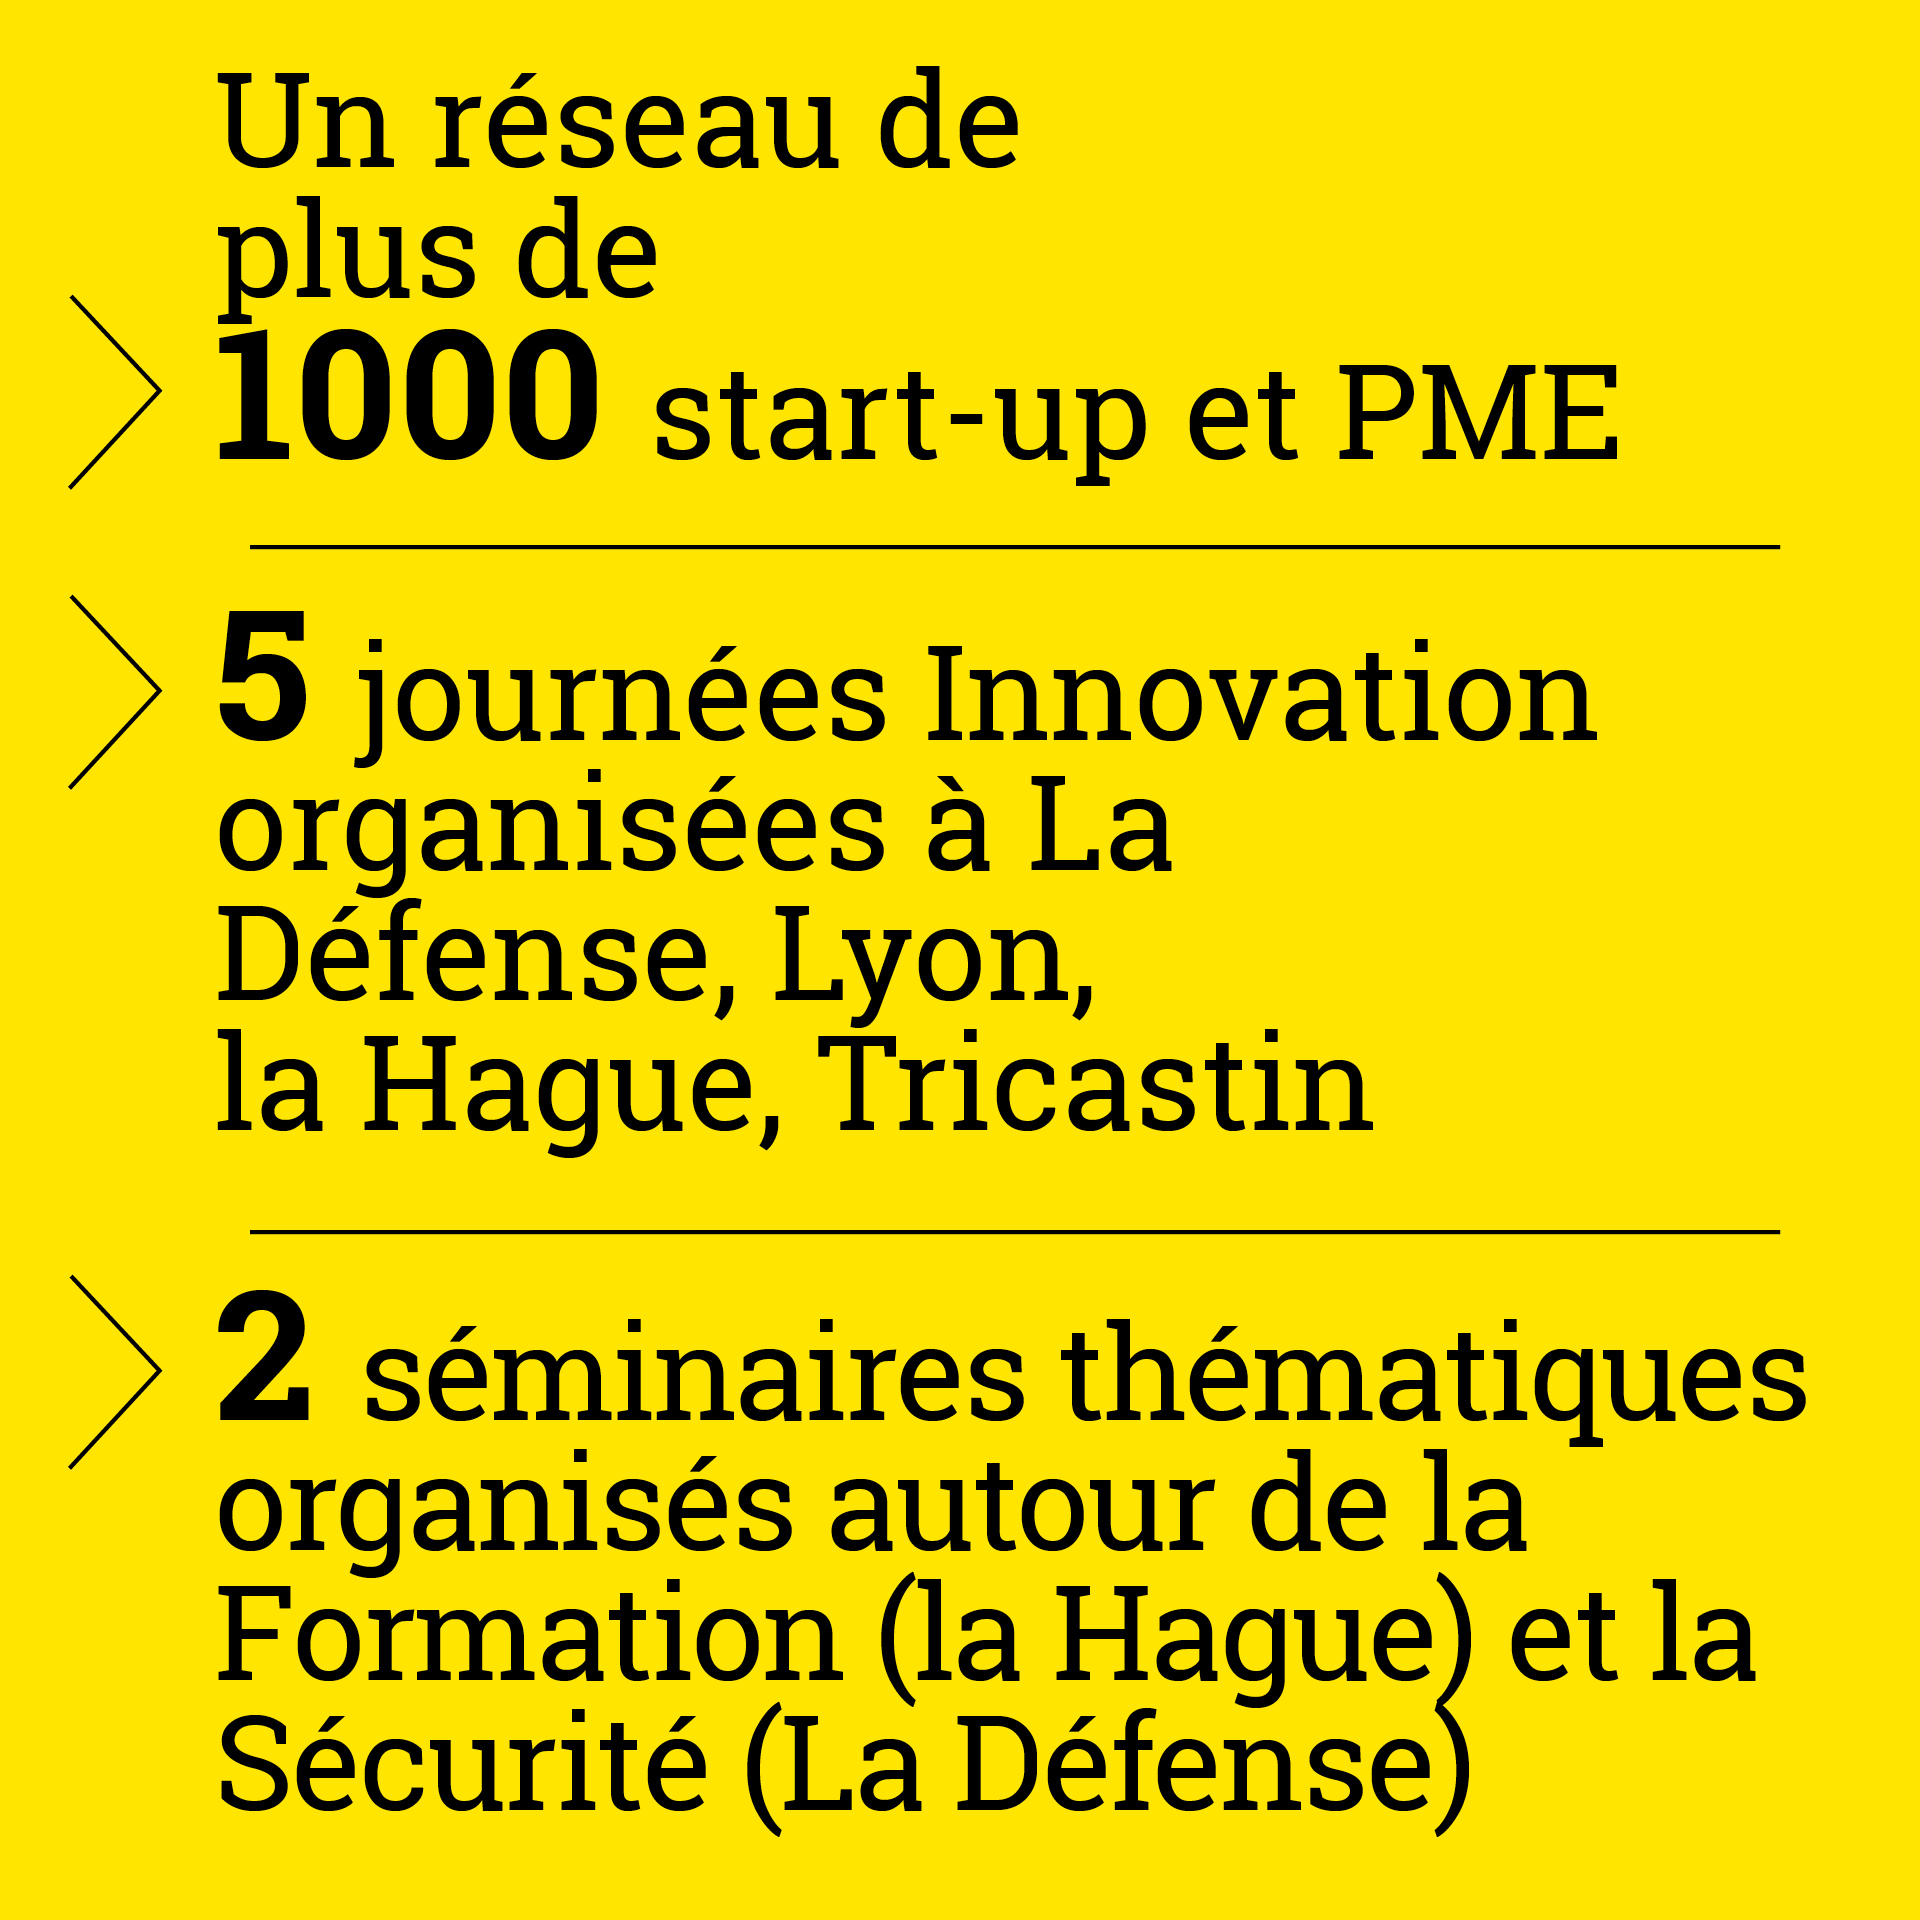 Start-up et PME Orano